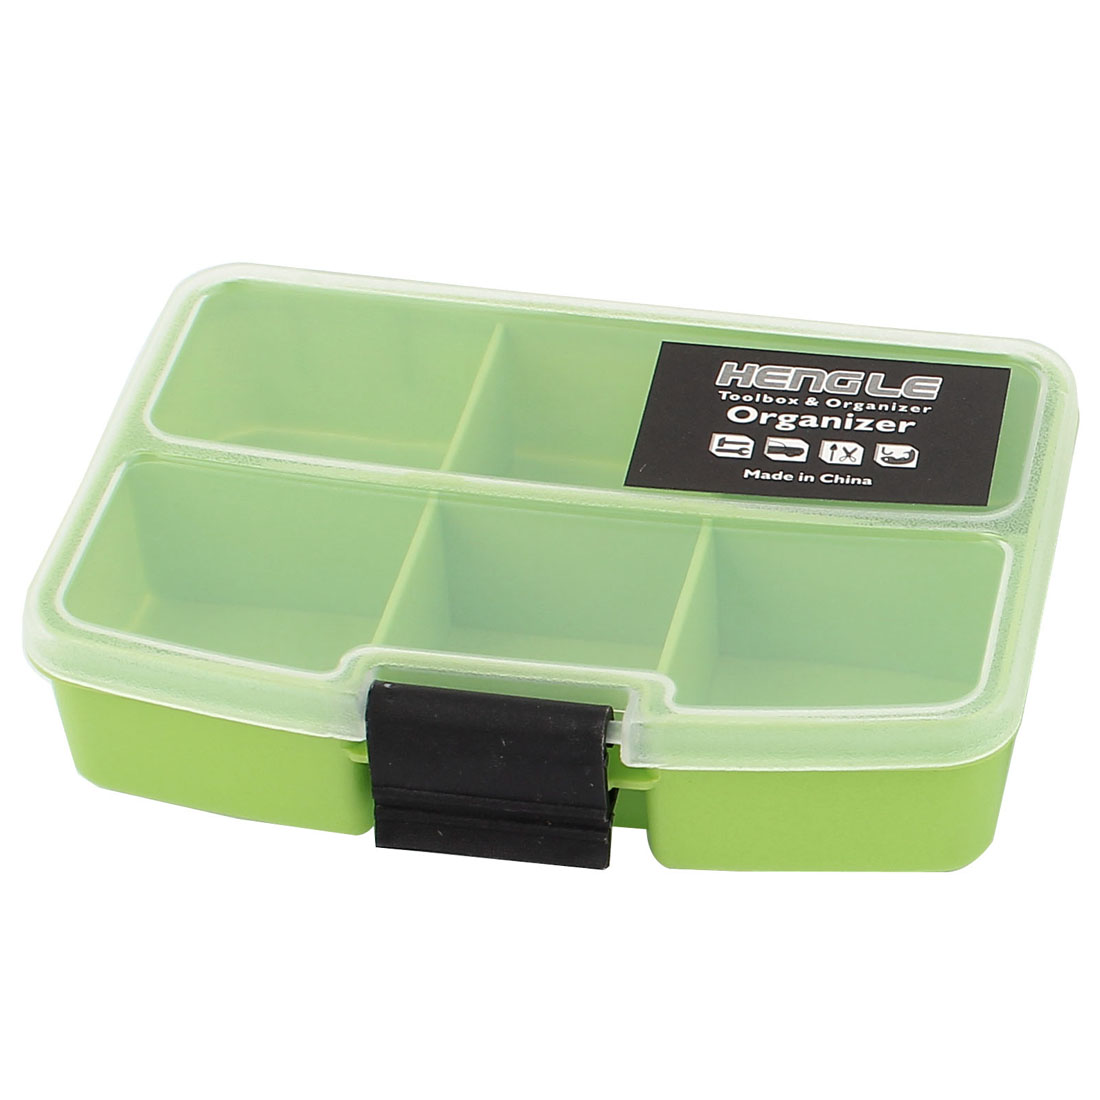 Fishing Tool Jewellery Container Organizer Storage Box Case 6 Slots 2 Pcs Green